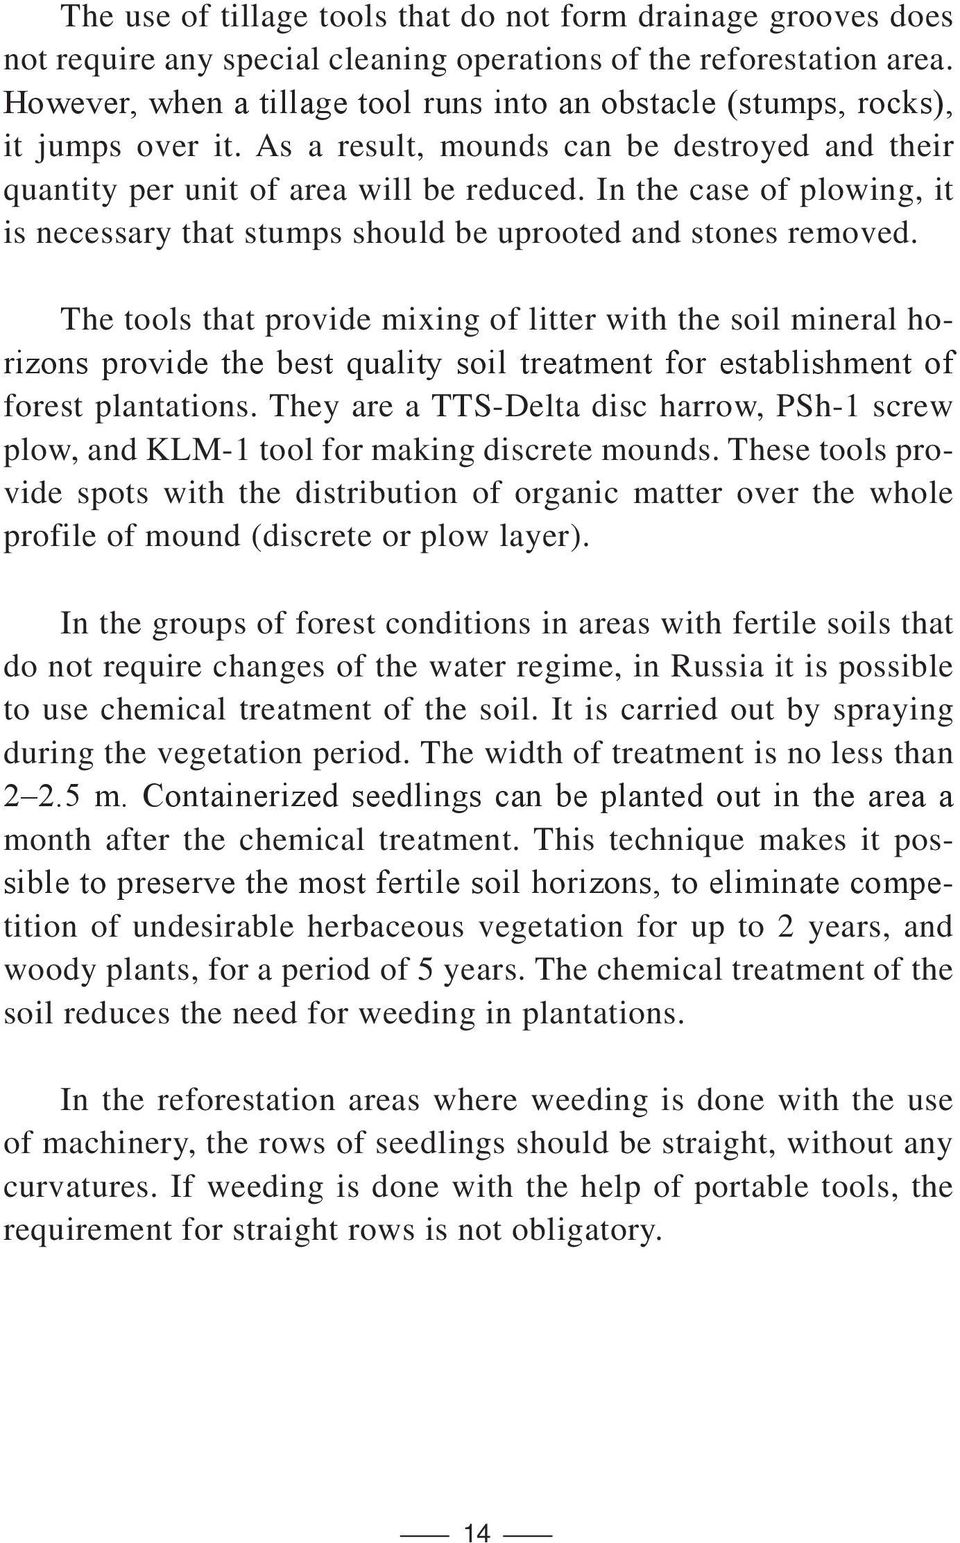 In the case of plowing, it is necessary that stumps should be uprooted and stones removed.